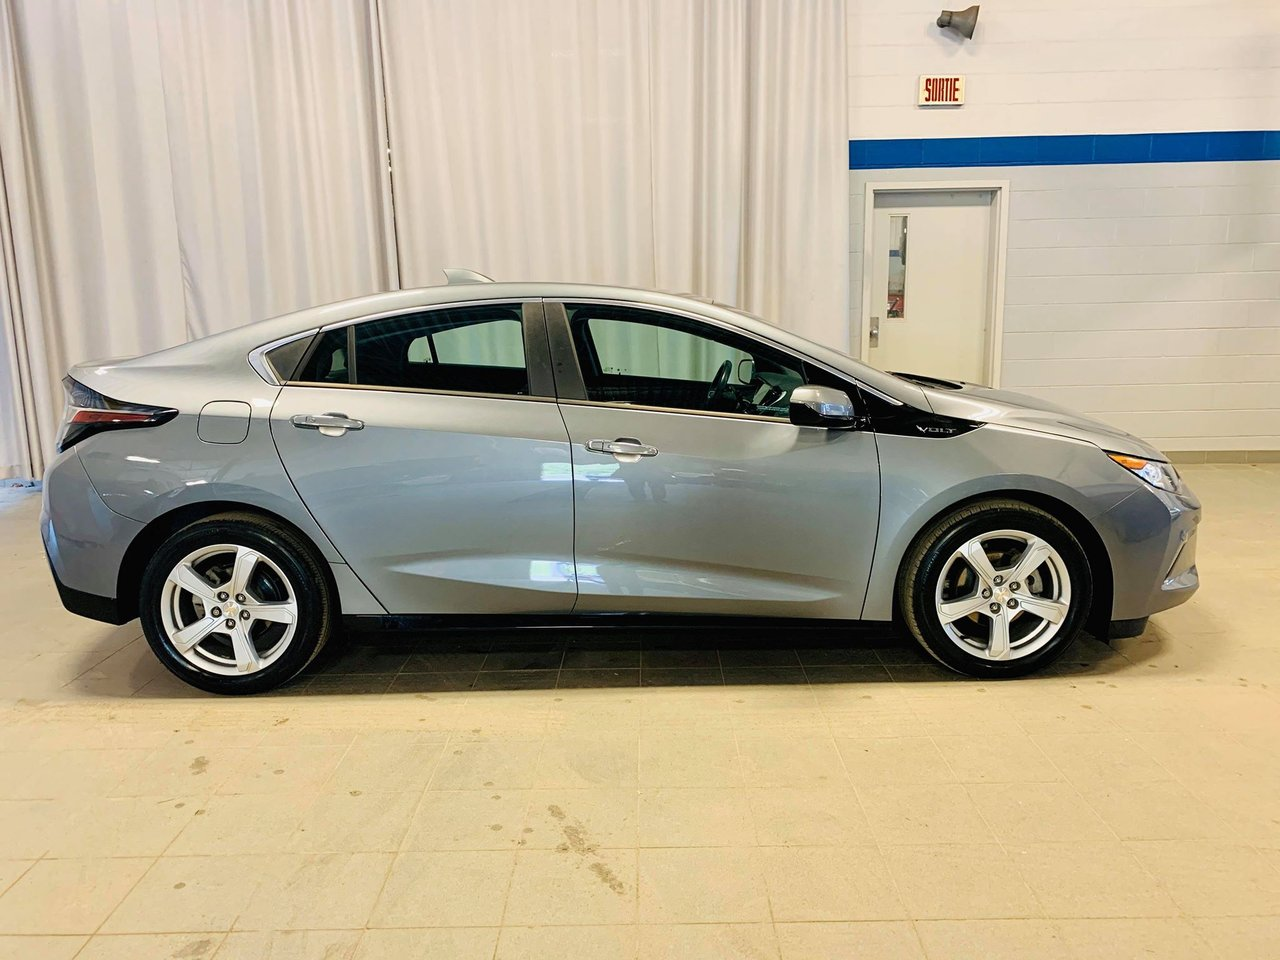 2019 Chevrolet Volt Electric 5dr HB LT